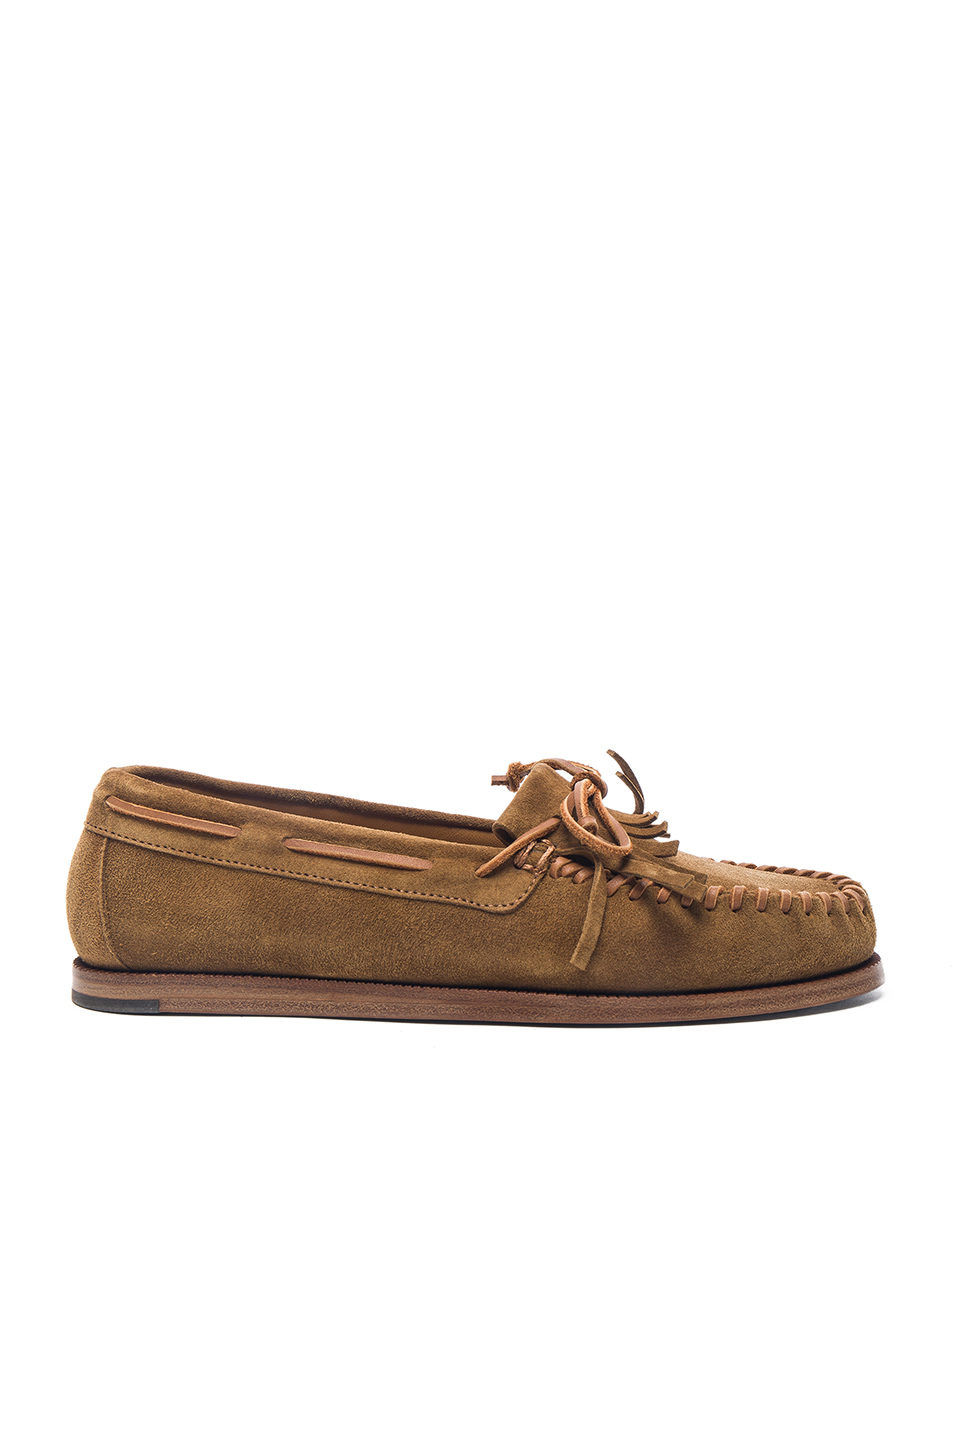 Saint Laurent Suede Indian Moccasins in Brown